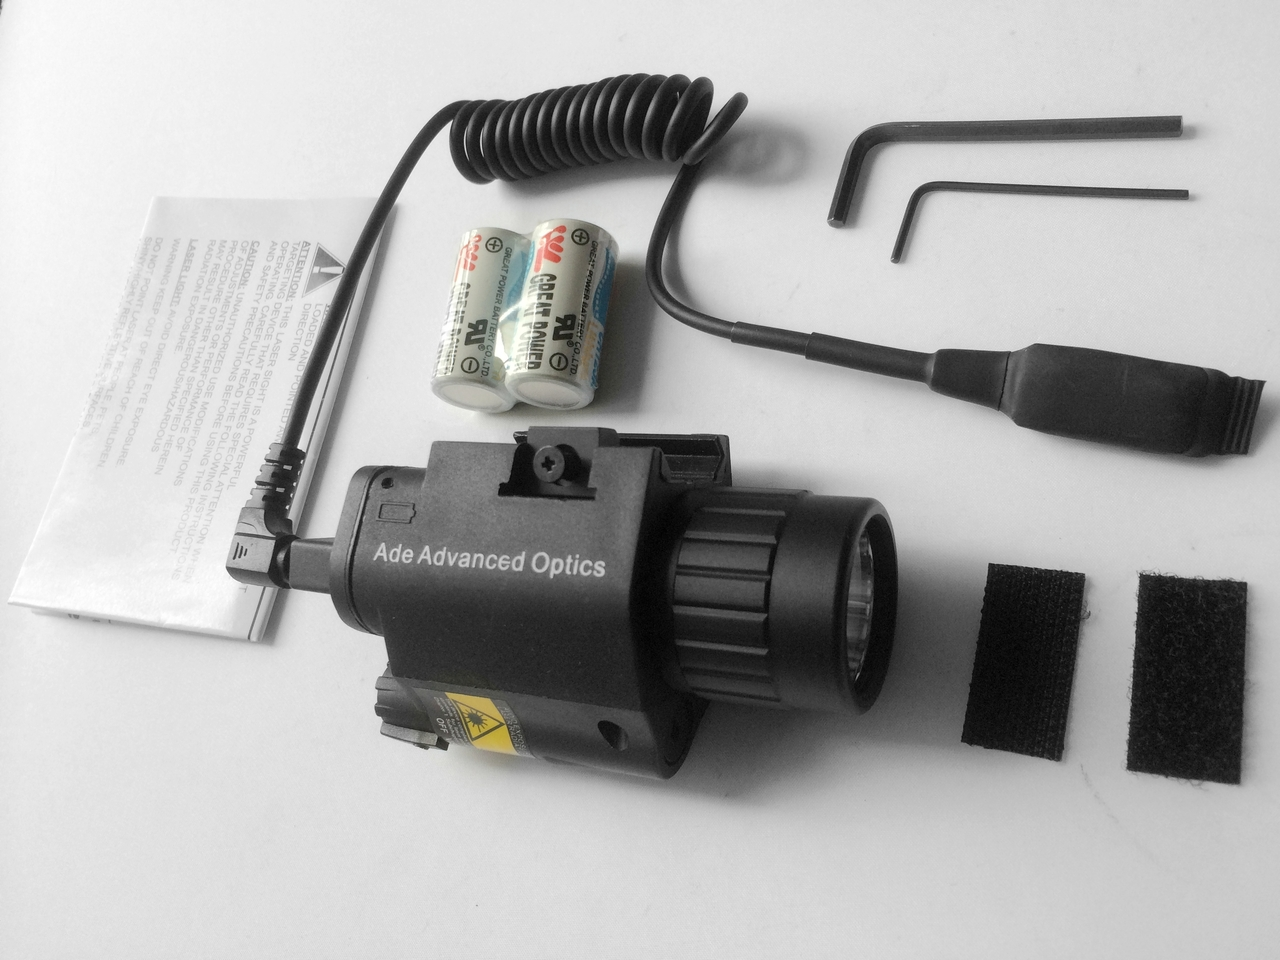 Rifle Tactical 200 Lumen CREE LED FlashLight + RED Laser Sight + Pressure Switch by Ade Advanced Optics by